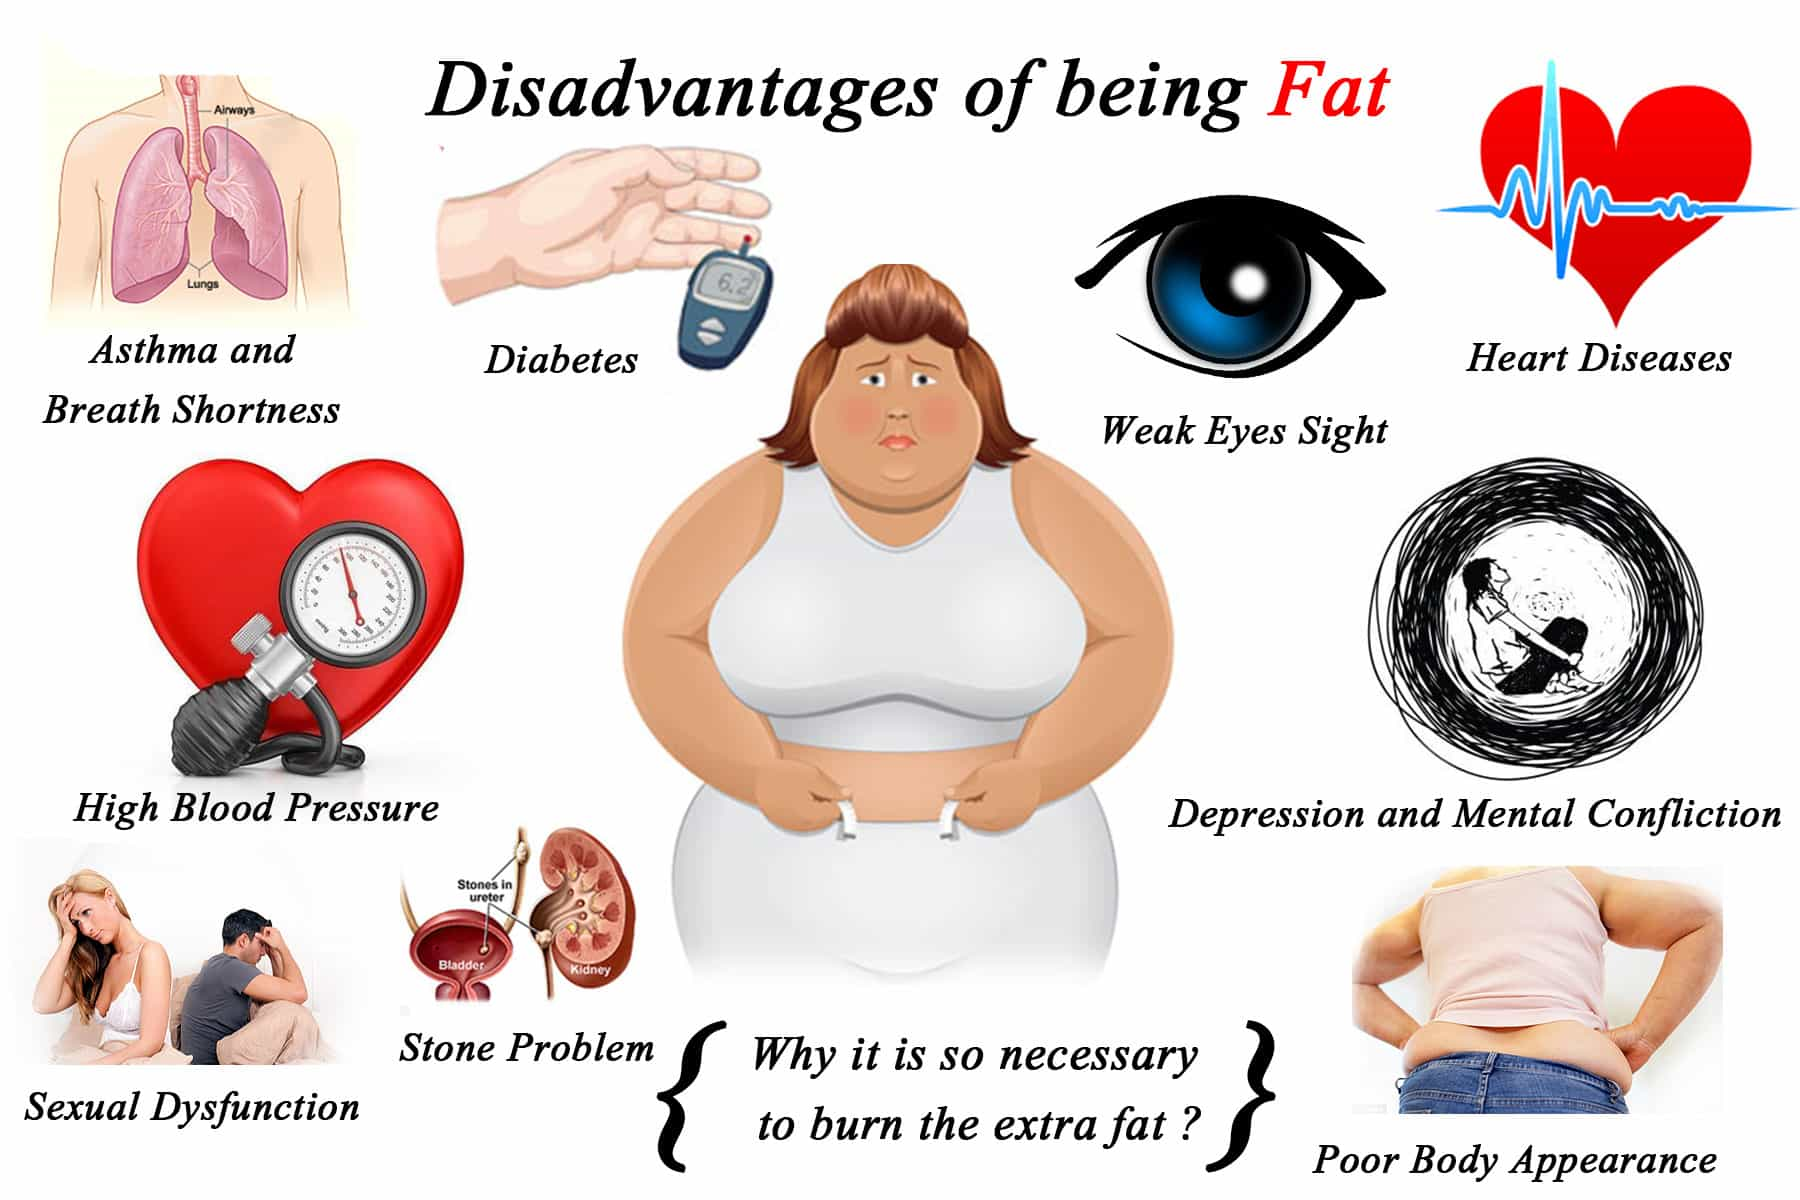 What are the Disadvantages of Being Overweight, with Exception to Health Issues?